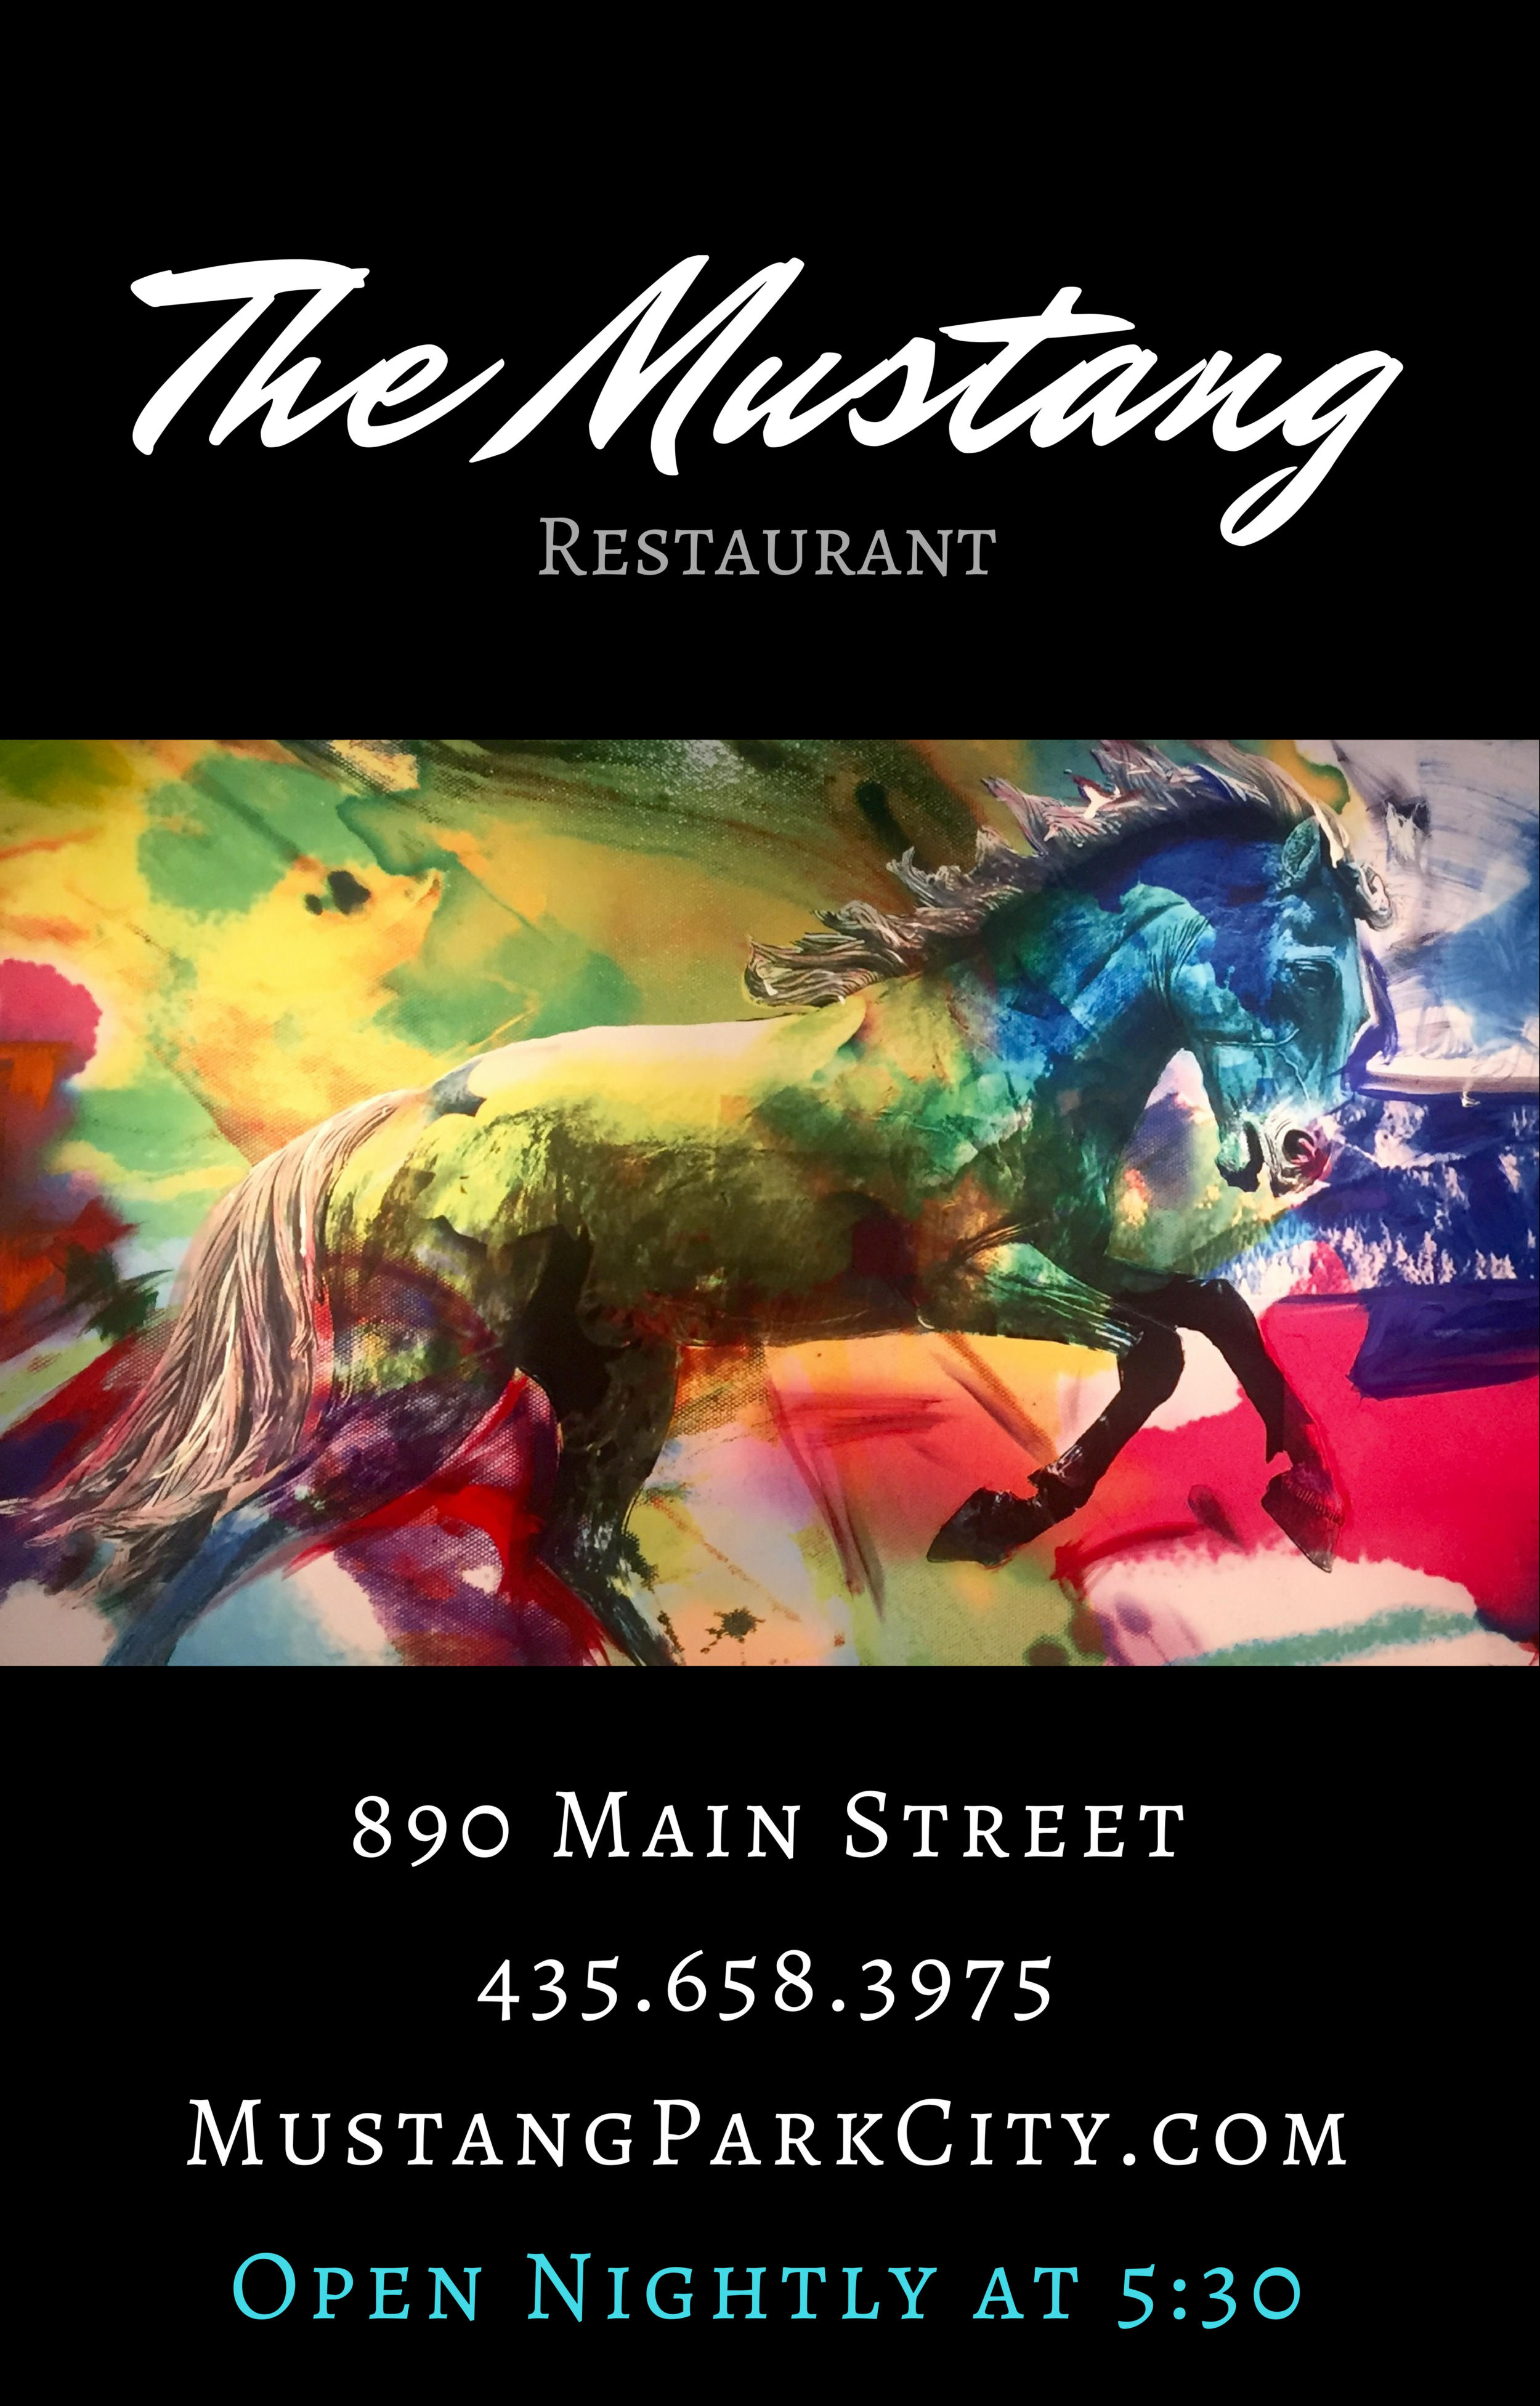 Celebrating 14 years on Historic Main Street. Fresh Seafood & steaks infused with flavors from around the globe. Sophisticated, elegant dining. Voted in the top 10 restaurants in Utah! -